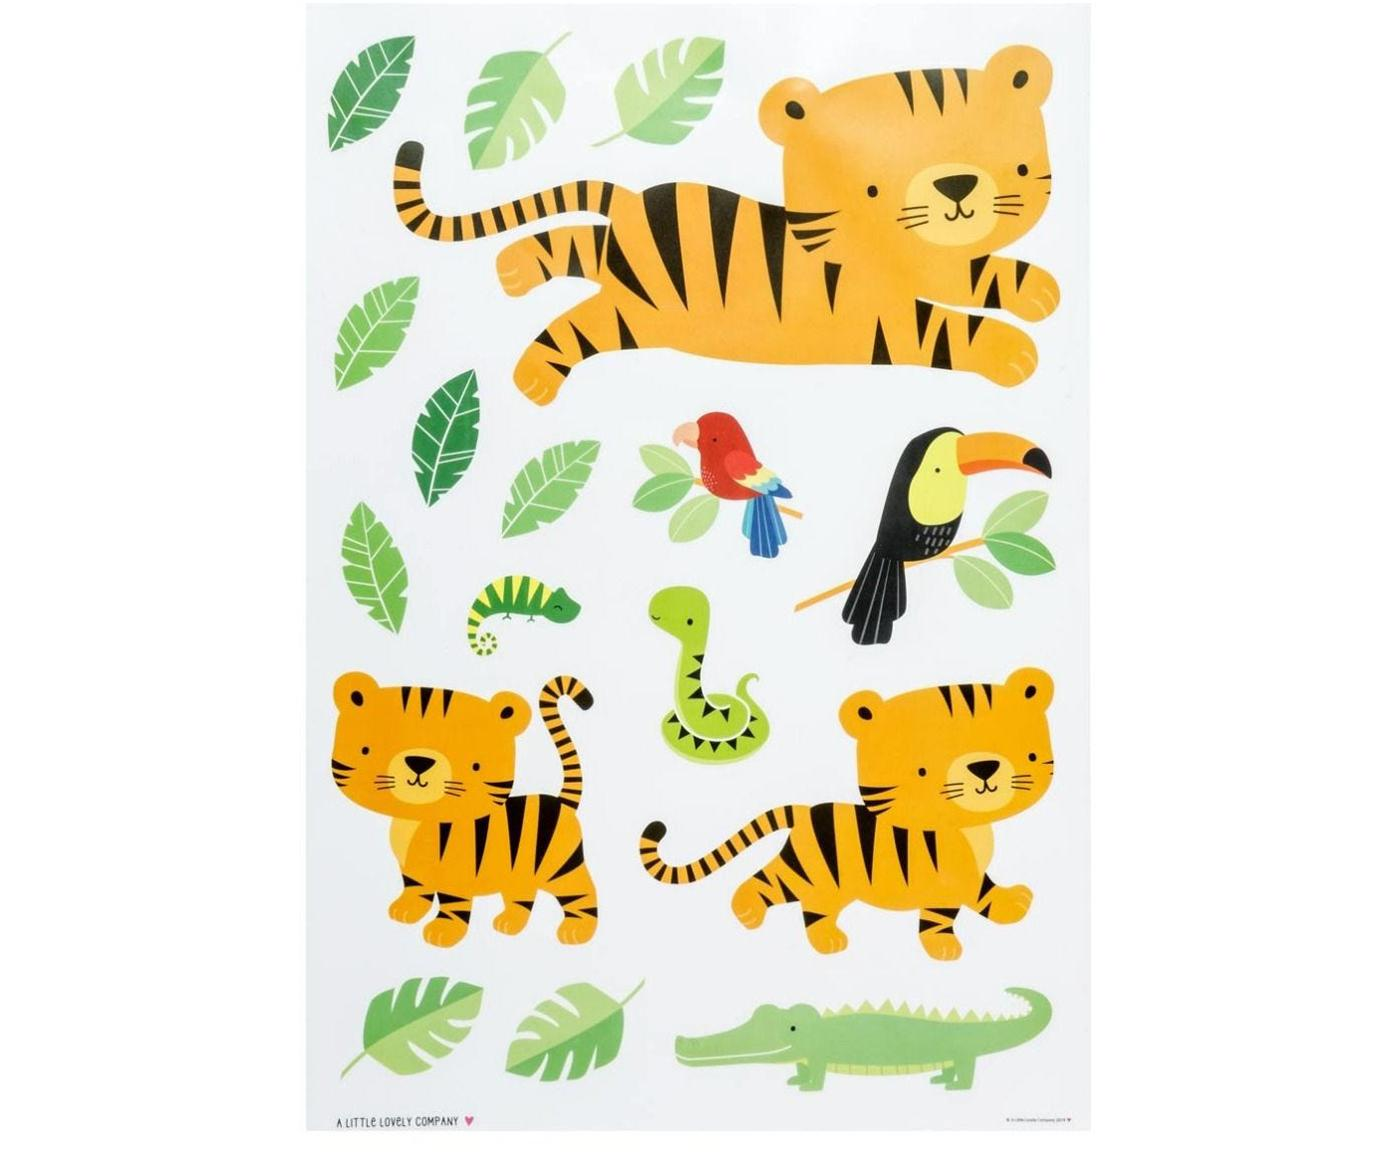 Set adesivi murali Jungle Tiger, 17 pz., Materiale sintetico, Multicolore, Larg. 35 x Alt. 50 cm